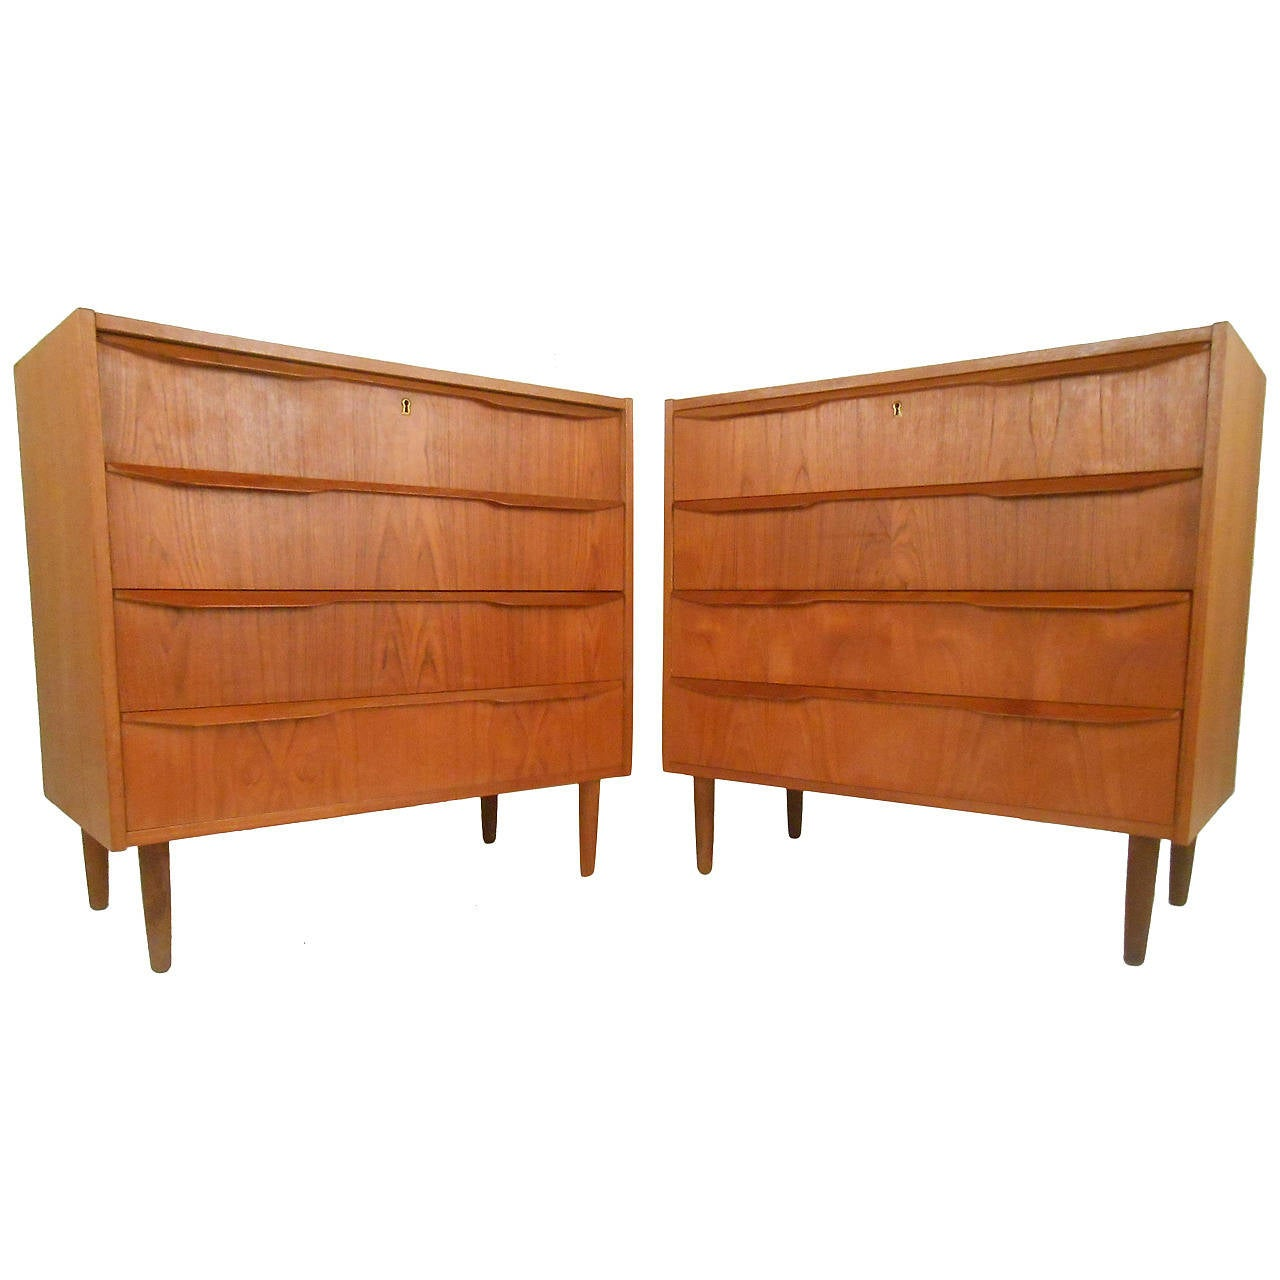 Pair Of Danish Teak Dresssers For Sale At 1stdibs